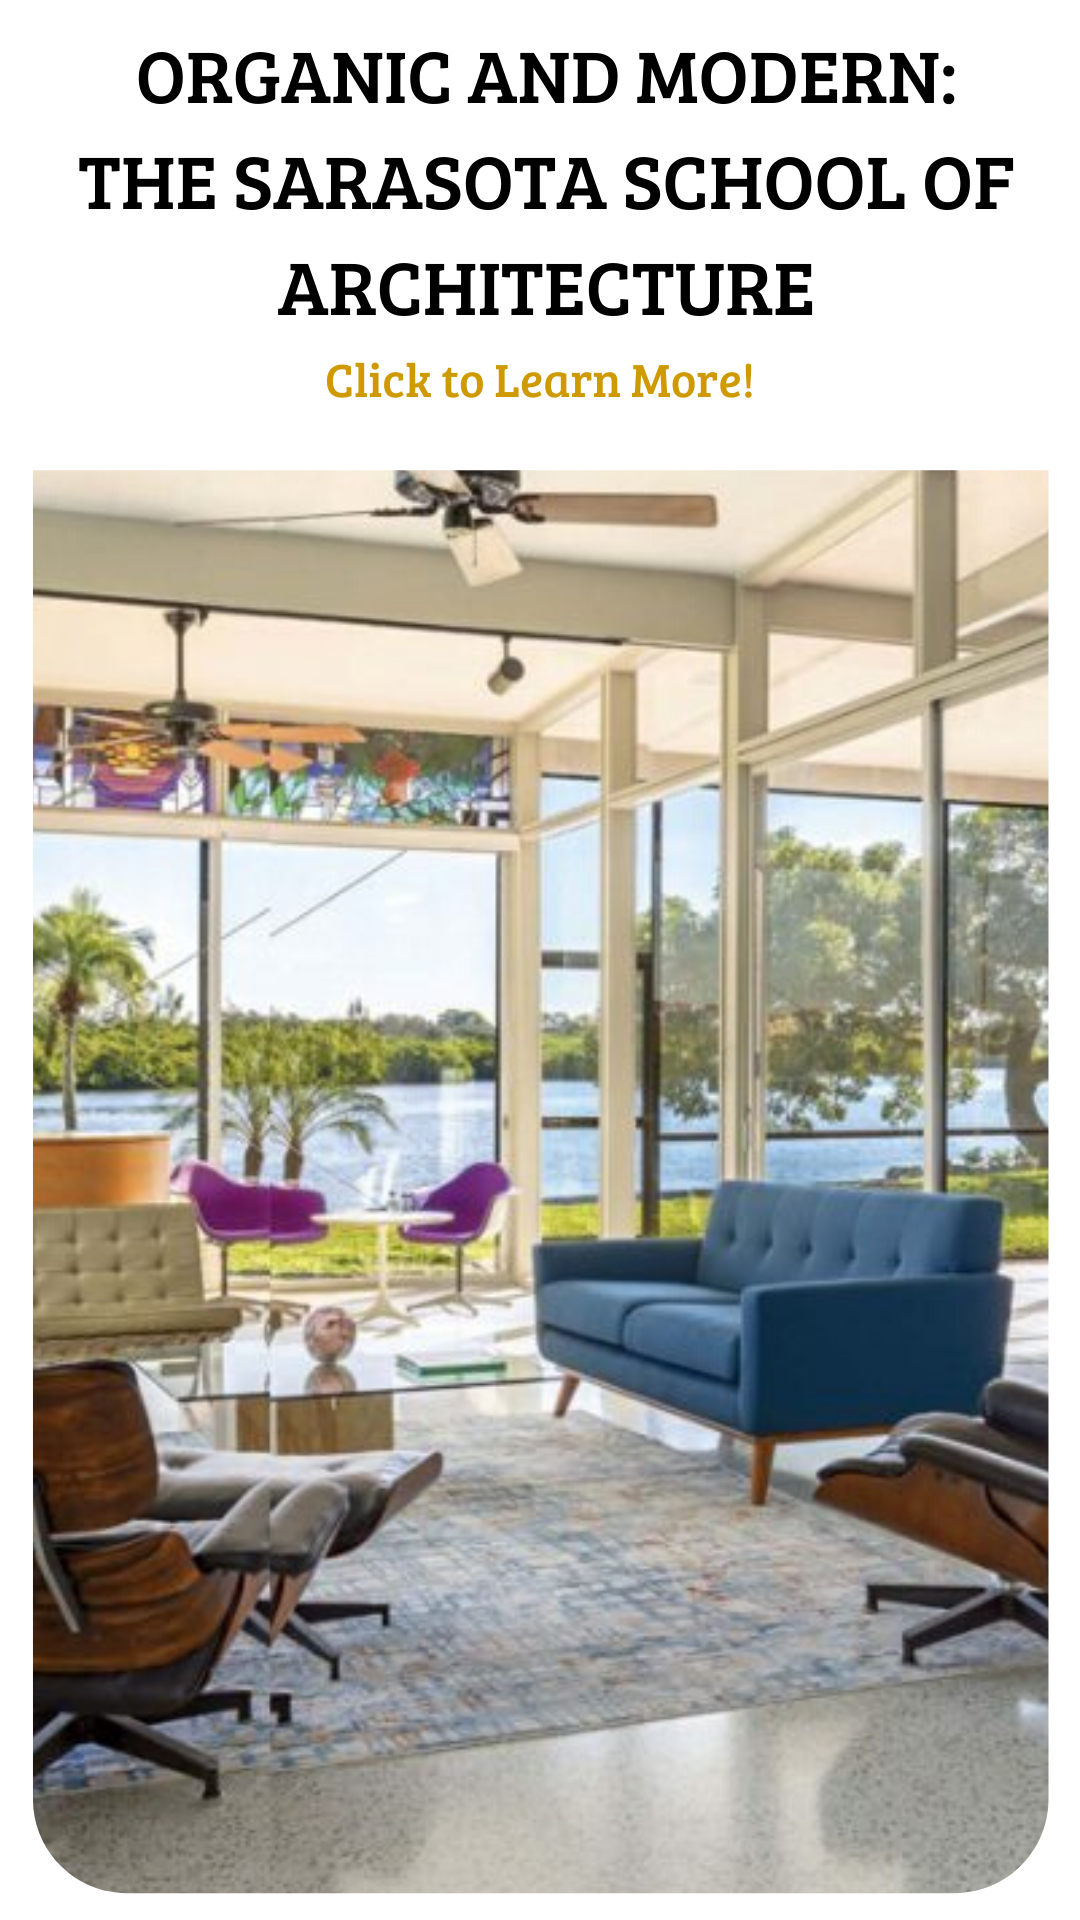 What happens when a group of architects forms a community focused on modernism? In the 1950s, the Sarasota School was a mid century haven for designers, allowing them to experiment with styles never before seen. Click the link below to learn more about this structure and how it influenced MCM design today.🤗🏤 • 📷 The Sarasota Architectural Foundation and Seibert Architects • • • • • #atomicranch #atomicranchmagazine #midcenturymodern #midcenturydesign #sarasotaschoolofarchitecture